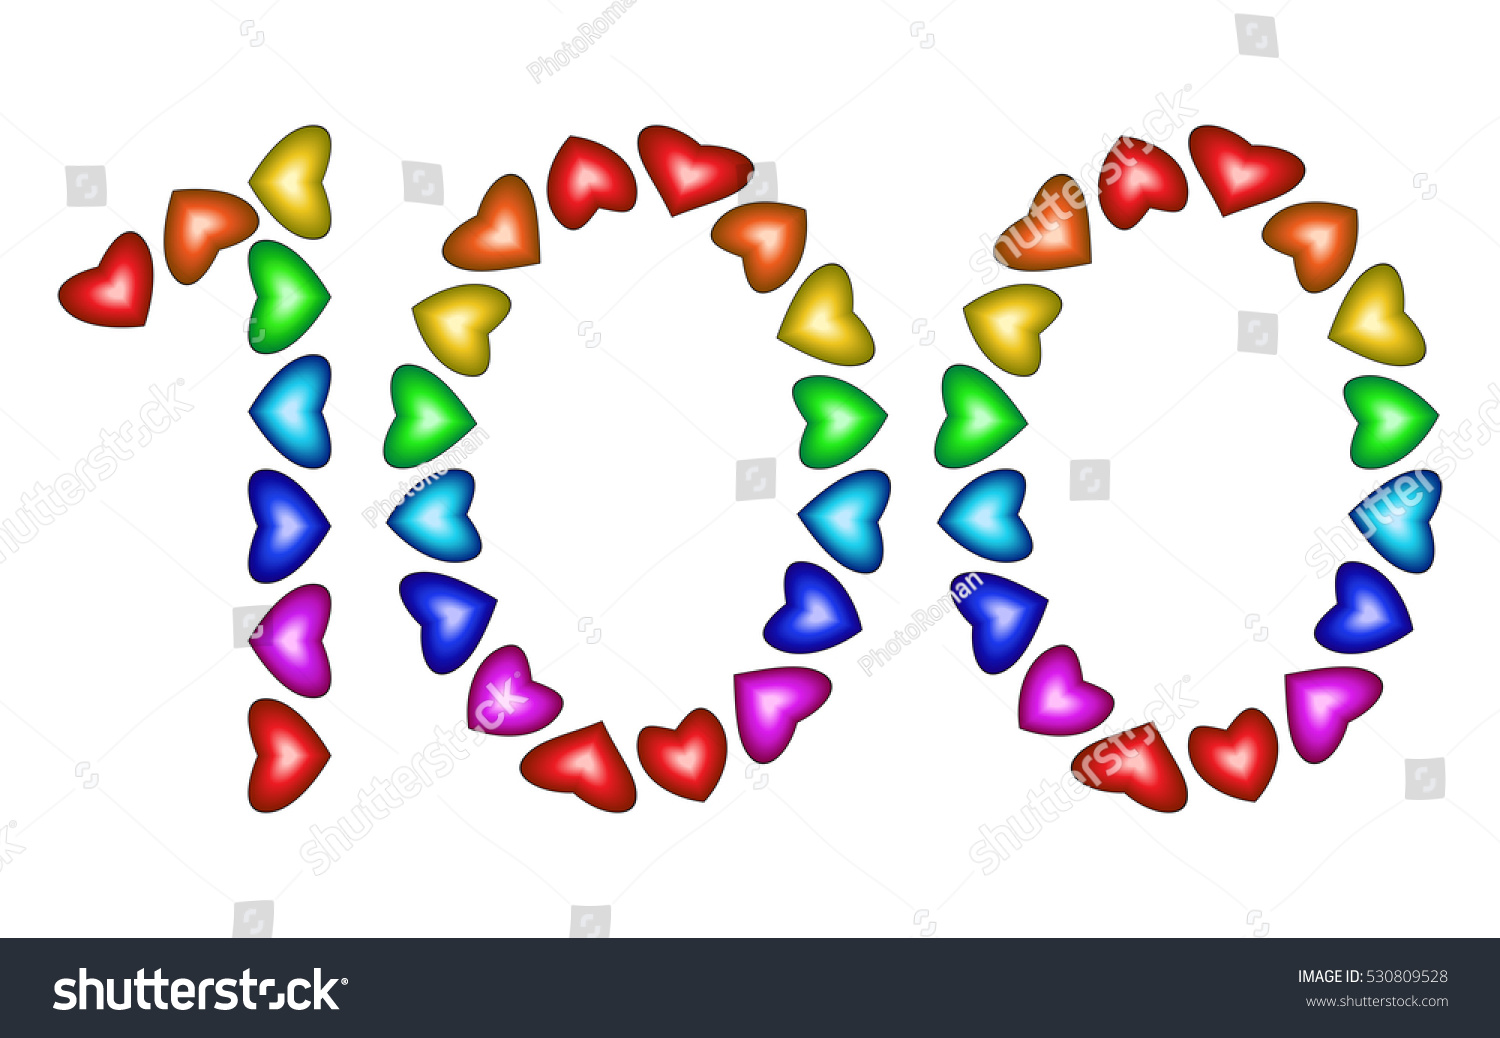 Number 100 Colorful Hearts On White Stock Illustration 530809528